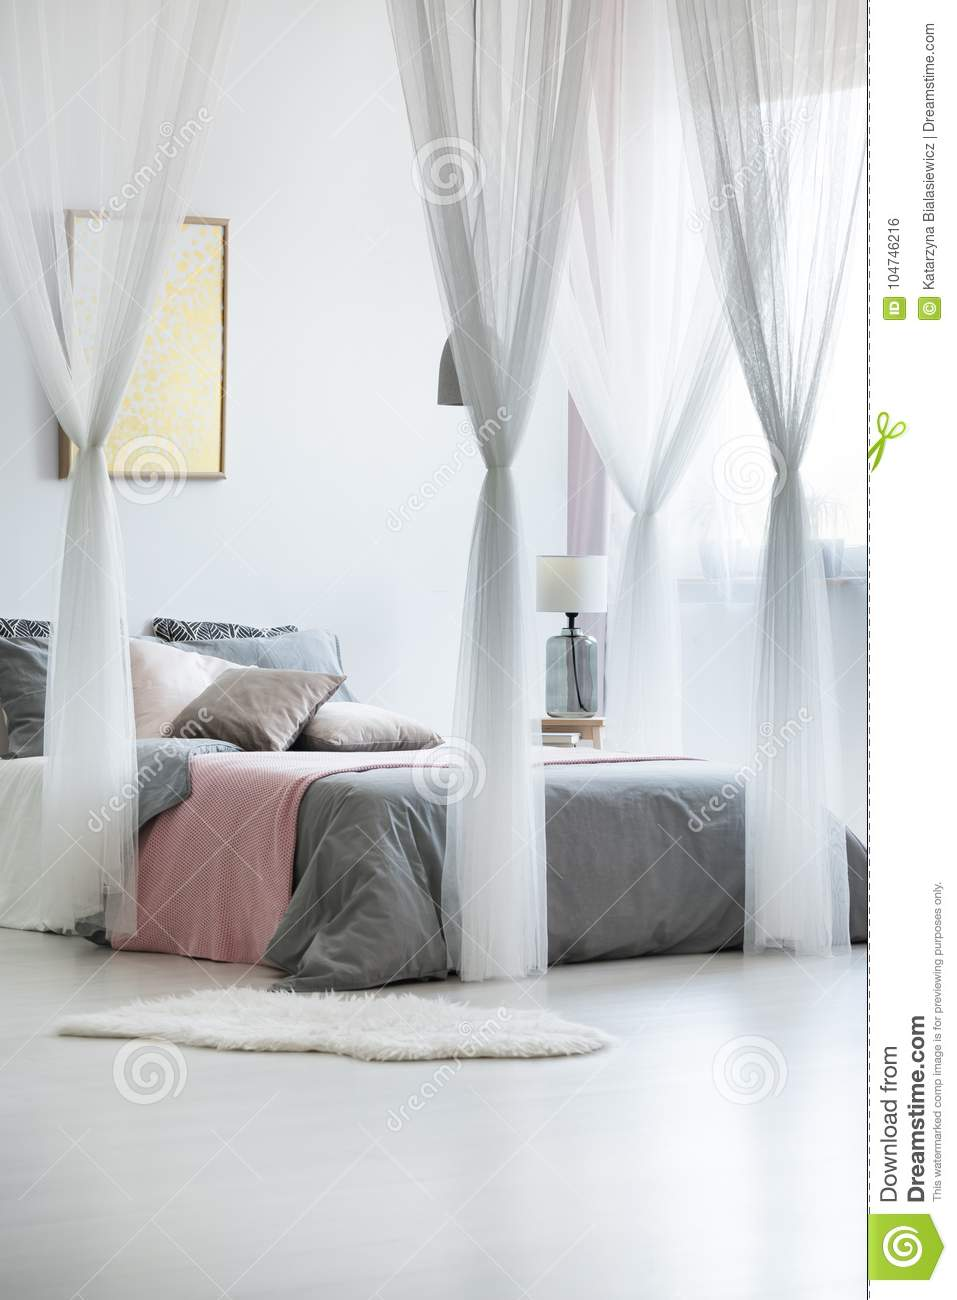 - Canopy Drapes In Calm Interior Stock Photo - Image Of King, Home